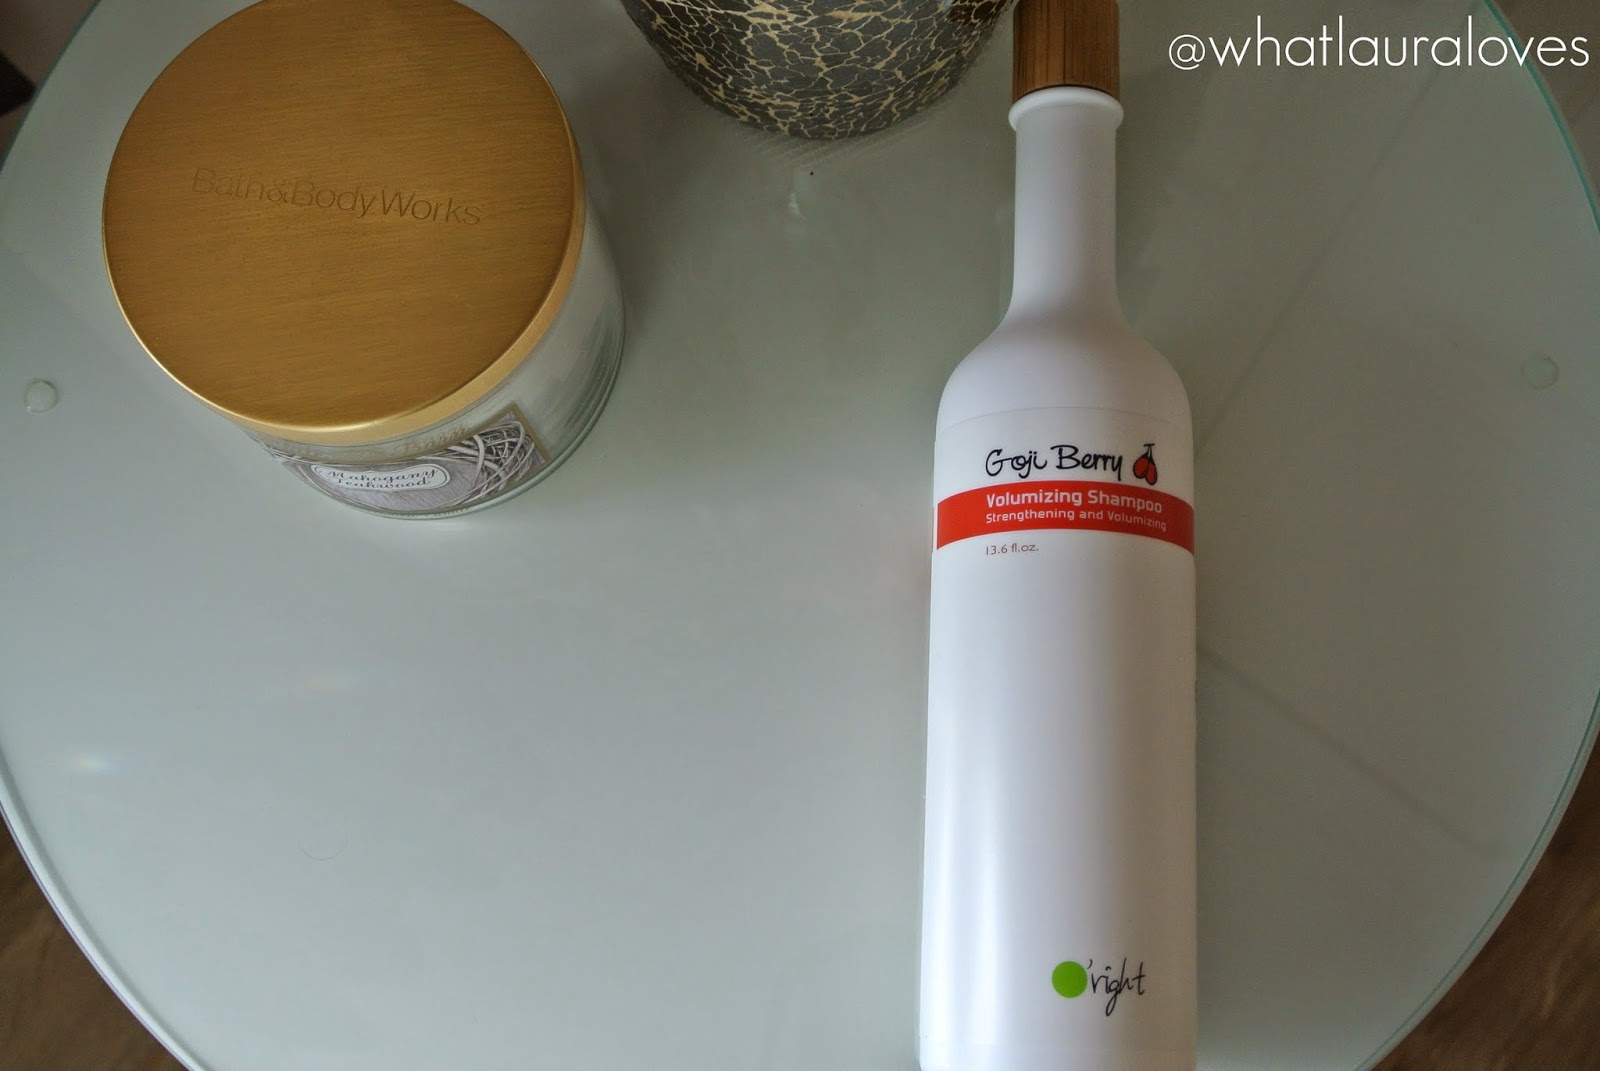 O'Right Goji Berry Volumizing Shampoo